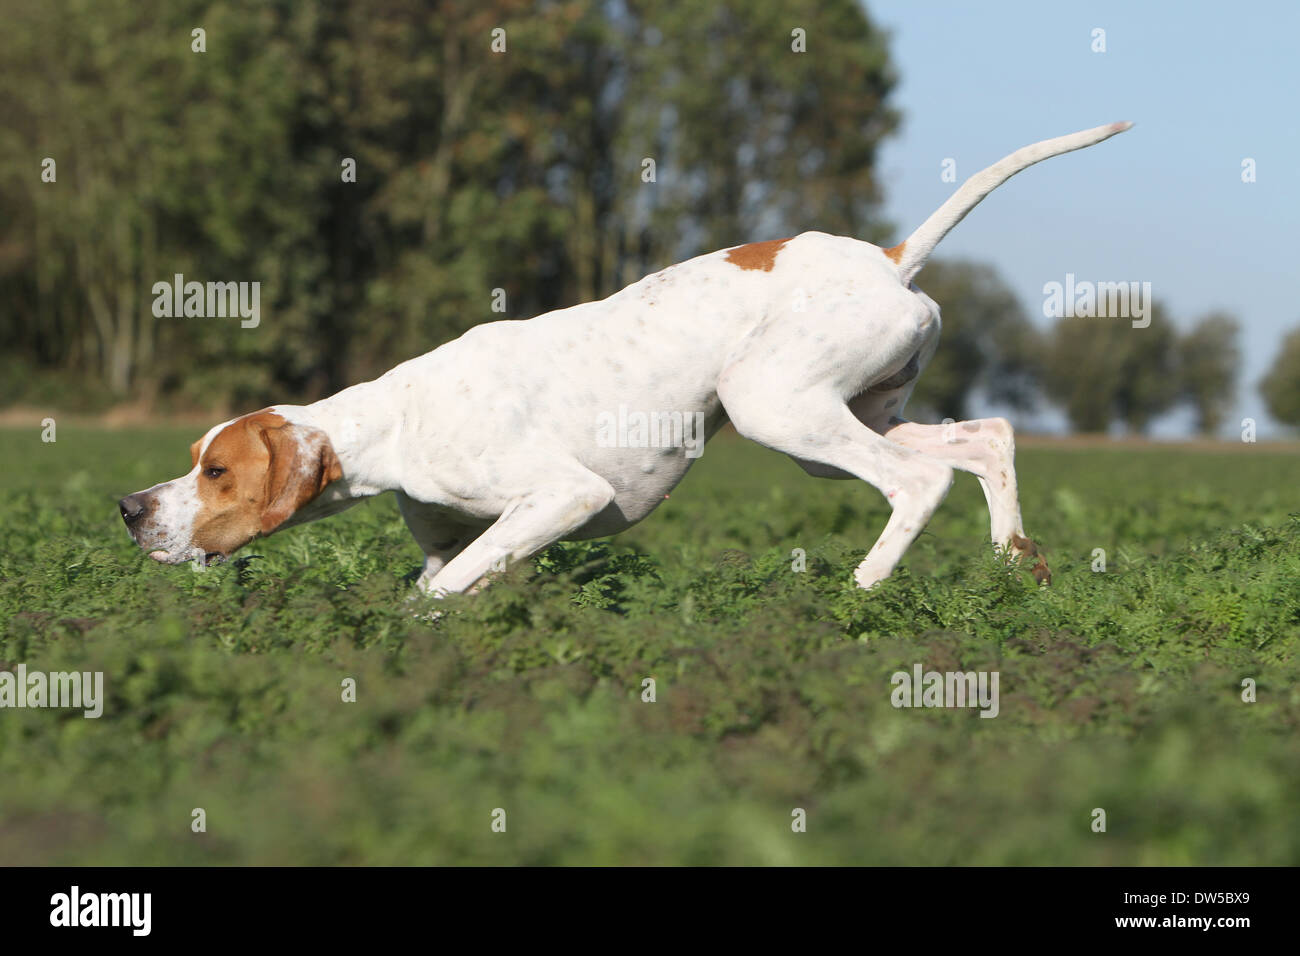 Dog English Pointer  /  adult running in a field - Stock Image